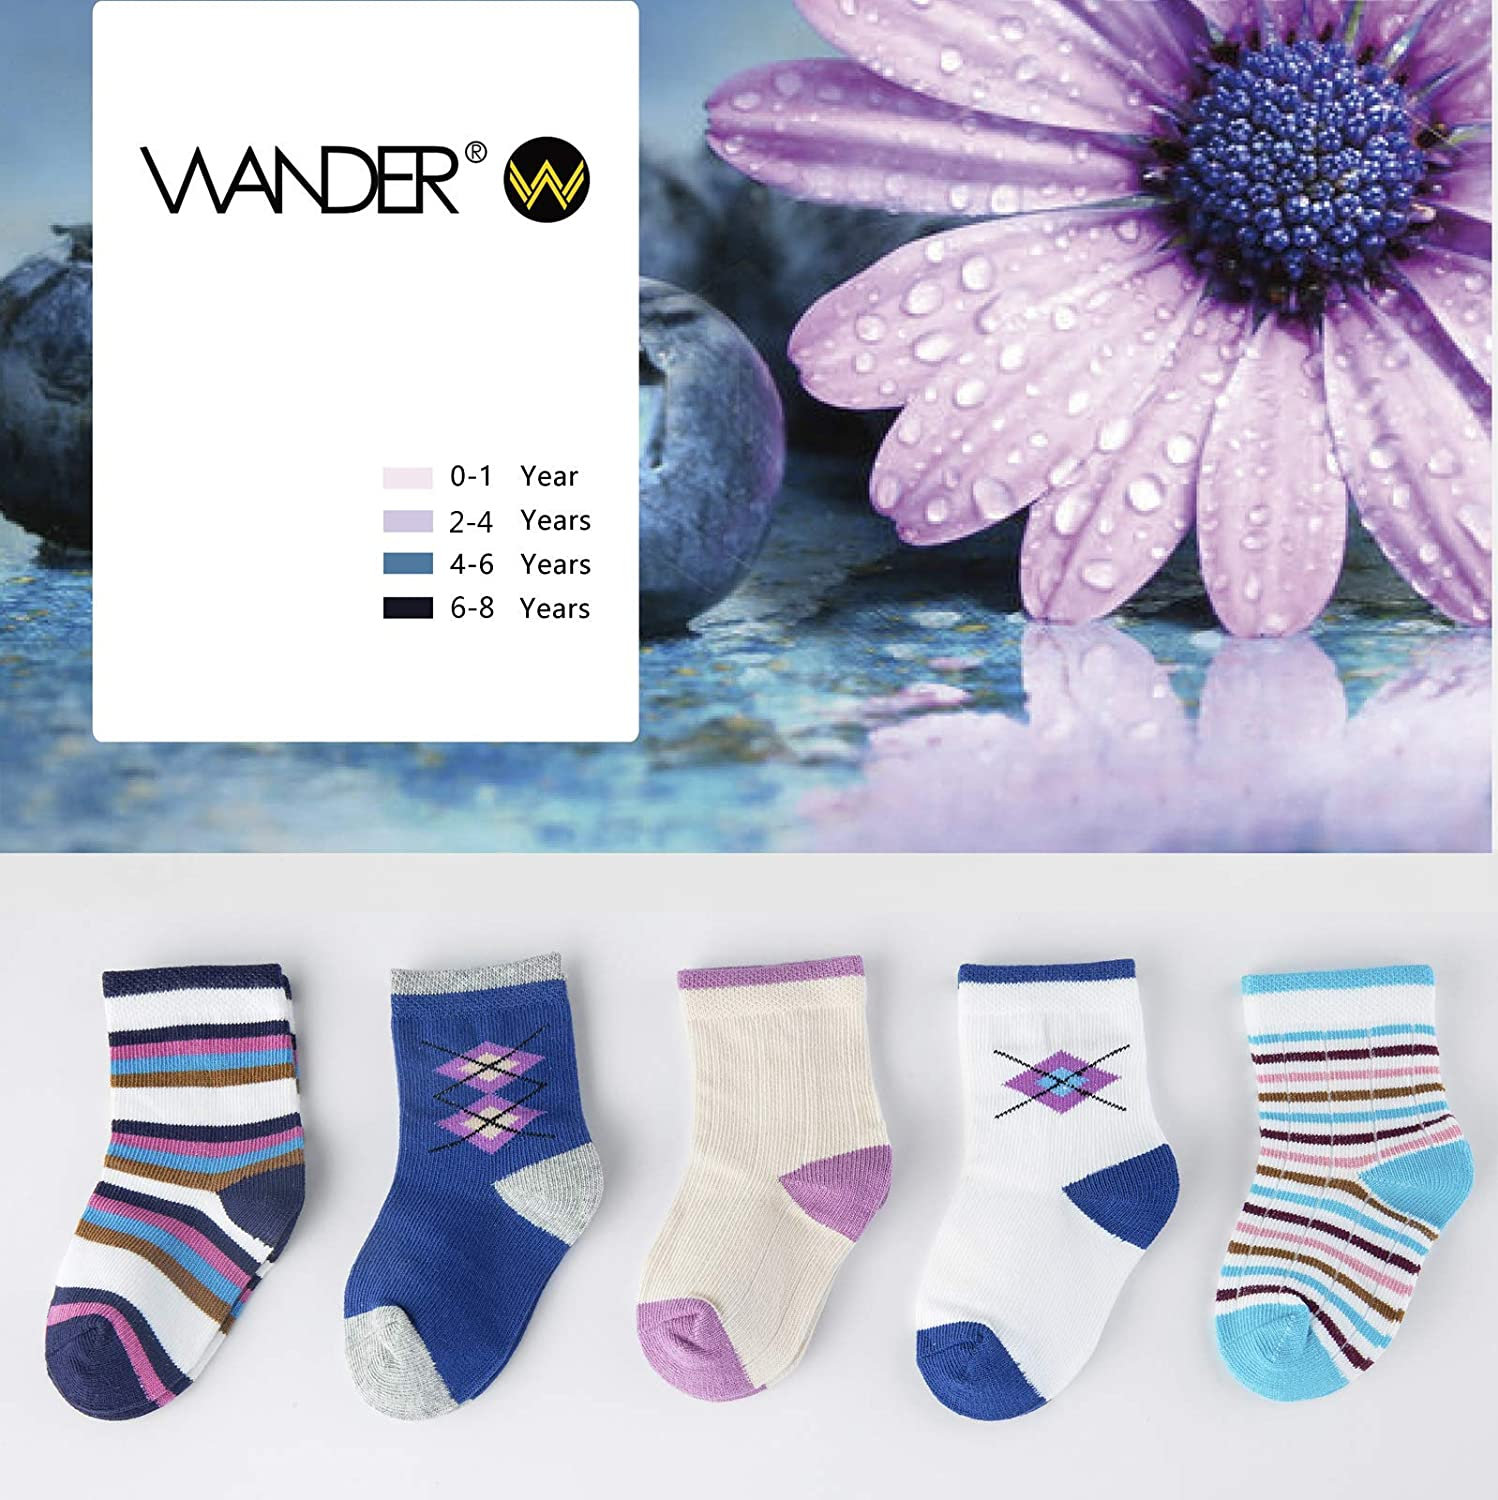 CHINE HIGH Varity Of Boys Girls Socks 5//12 Pairs Colorful Cartoon Thin and Comfortable Cotton Kids Socks